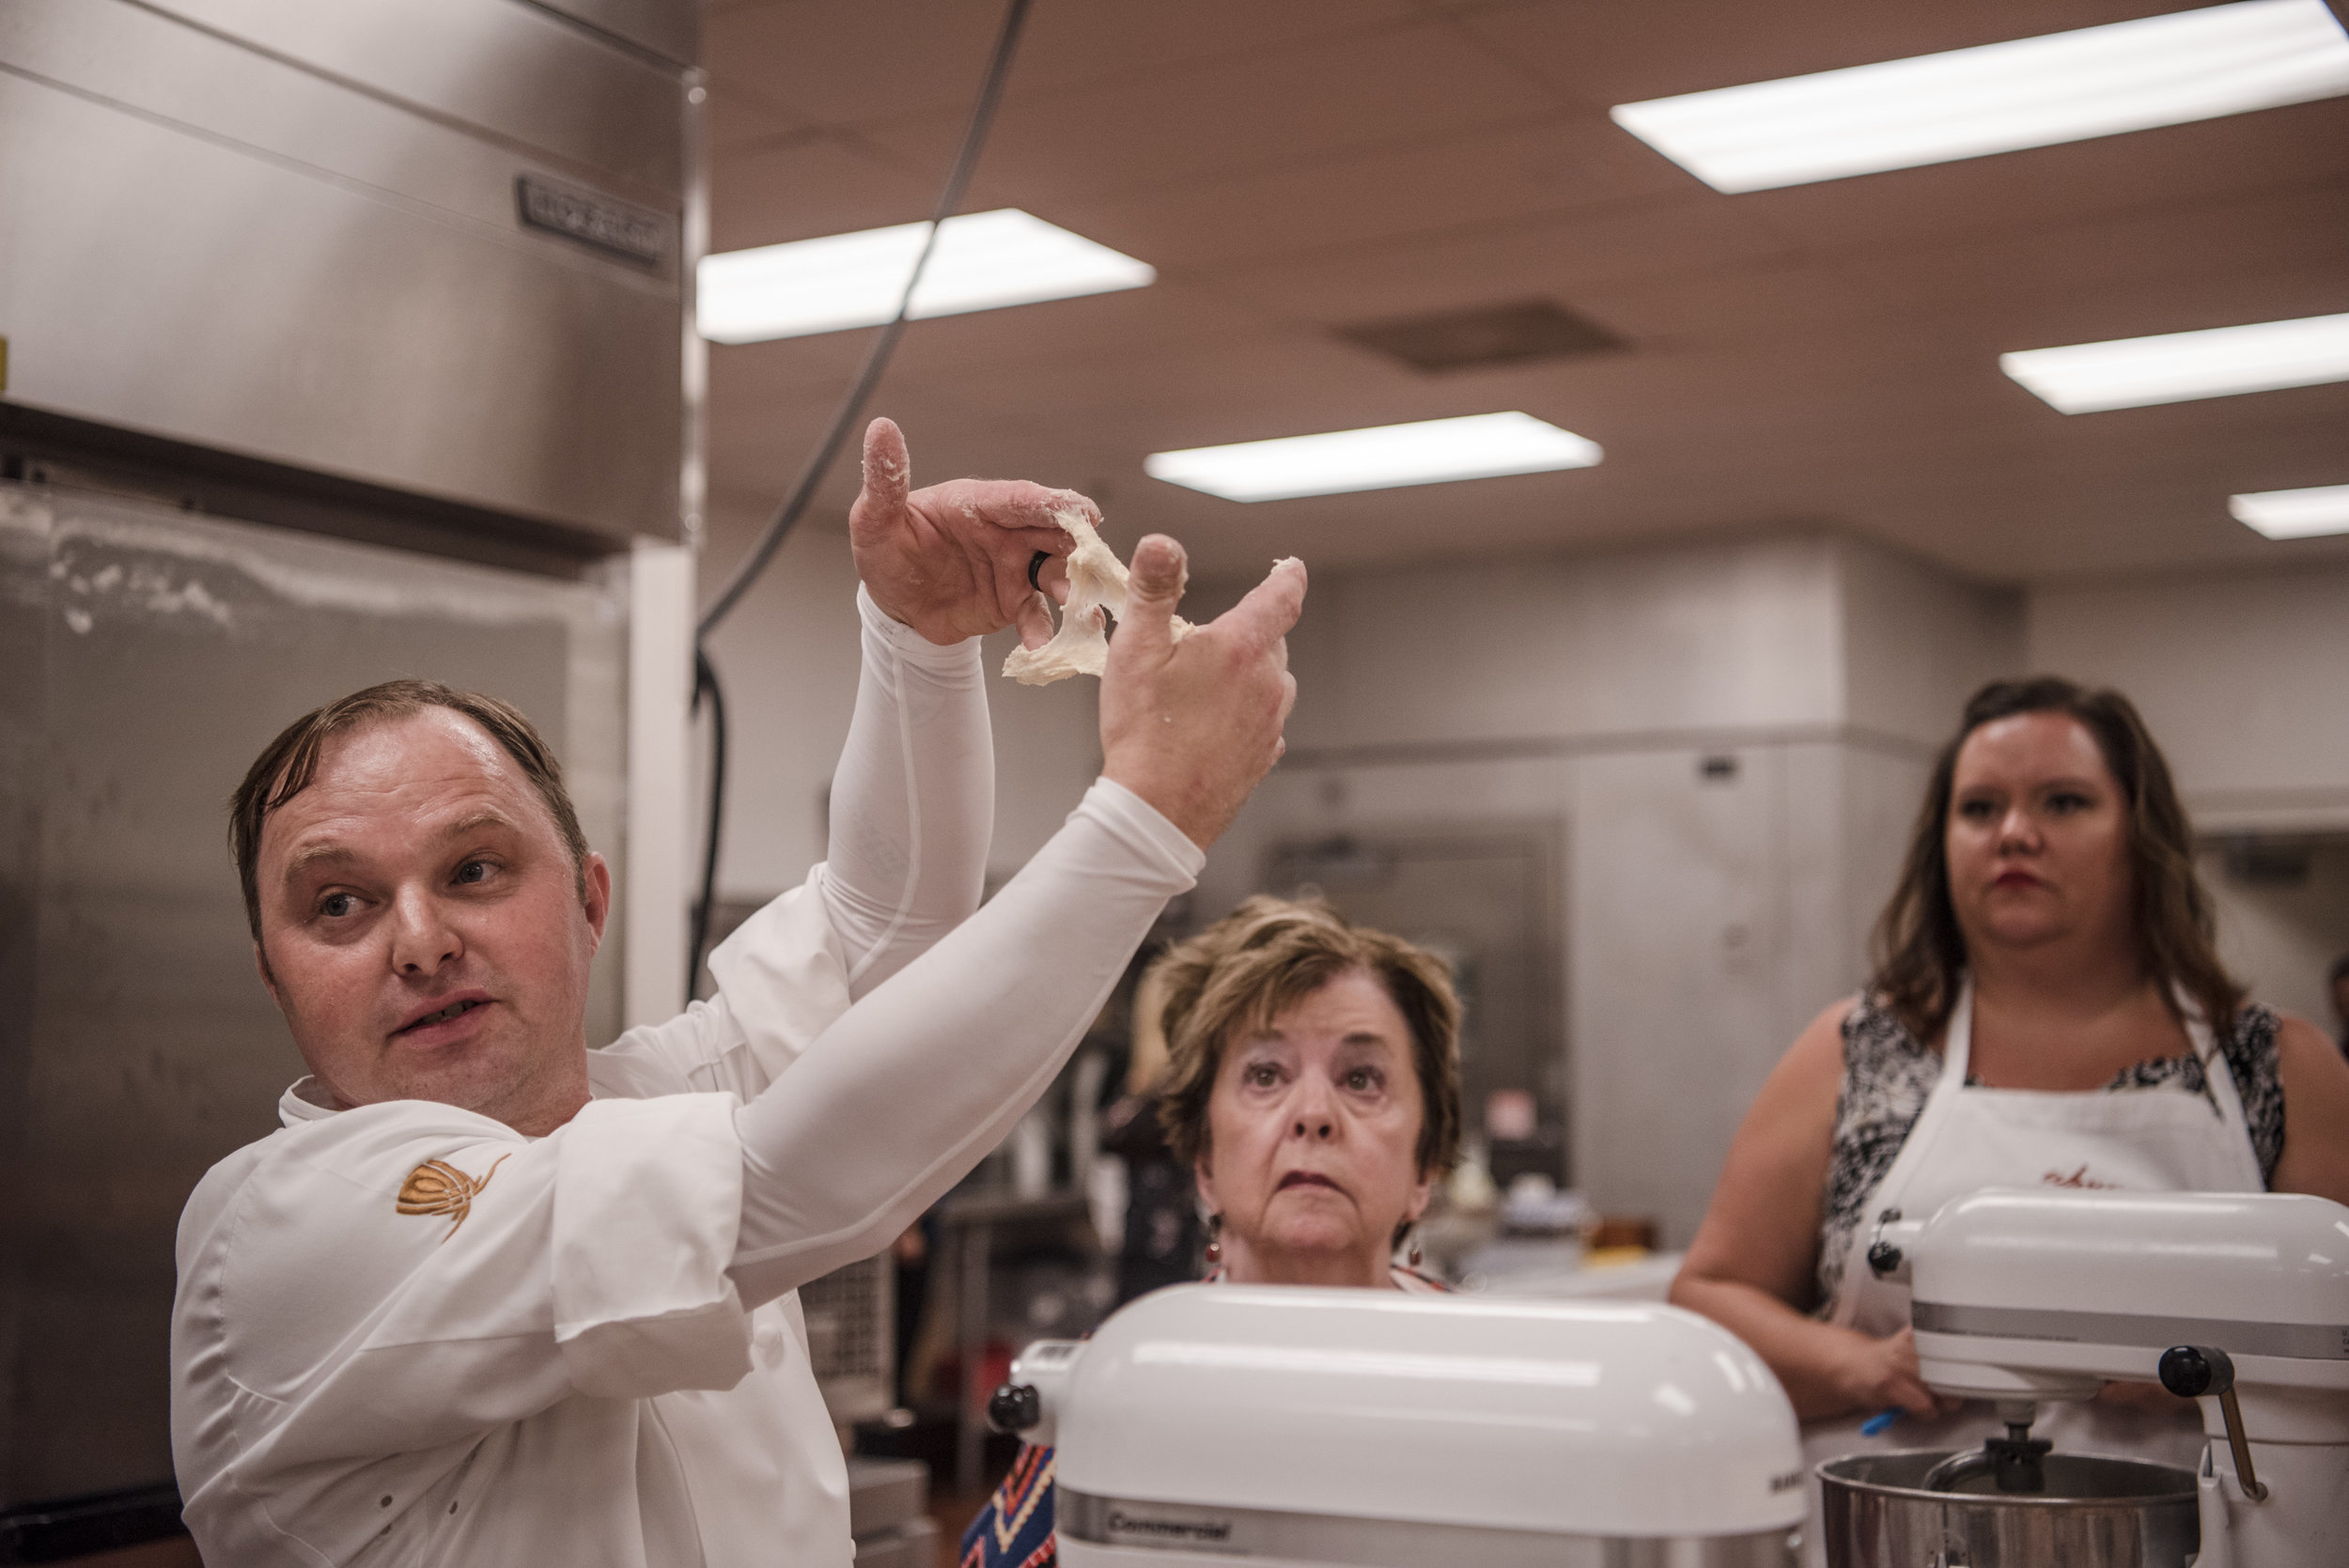 Chef Johann Willar leads a master class of bread baking for hotel guests on Thursday, July 27, 2017, at Wynn hotel-casino in Las Vegas. Morgan Lieberman Las Vegas Review-Journal